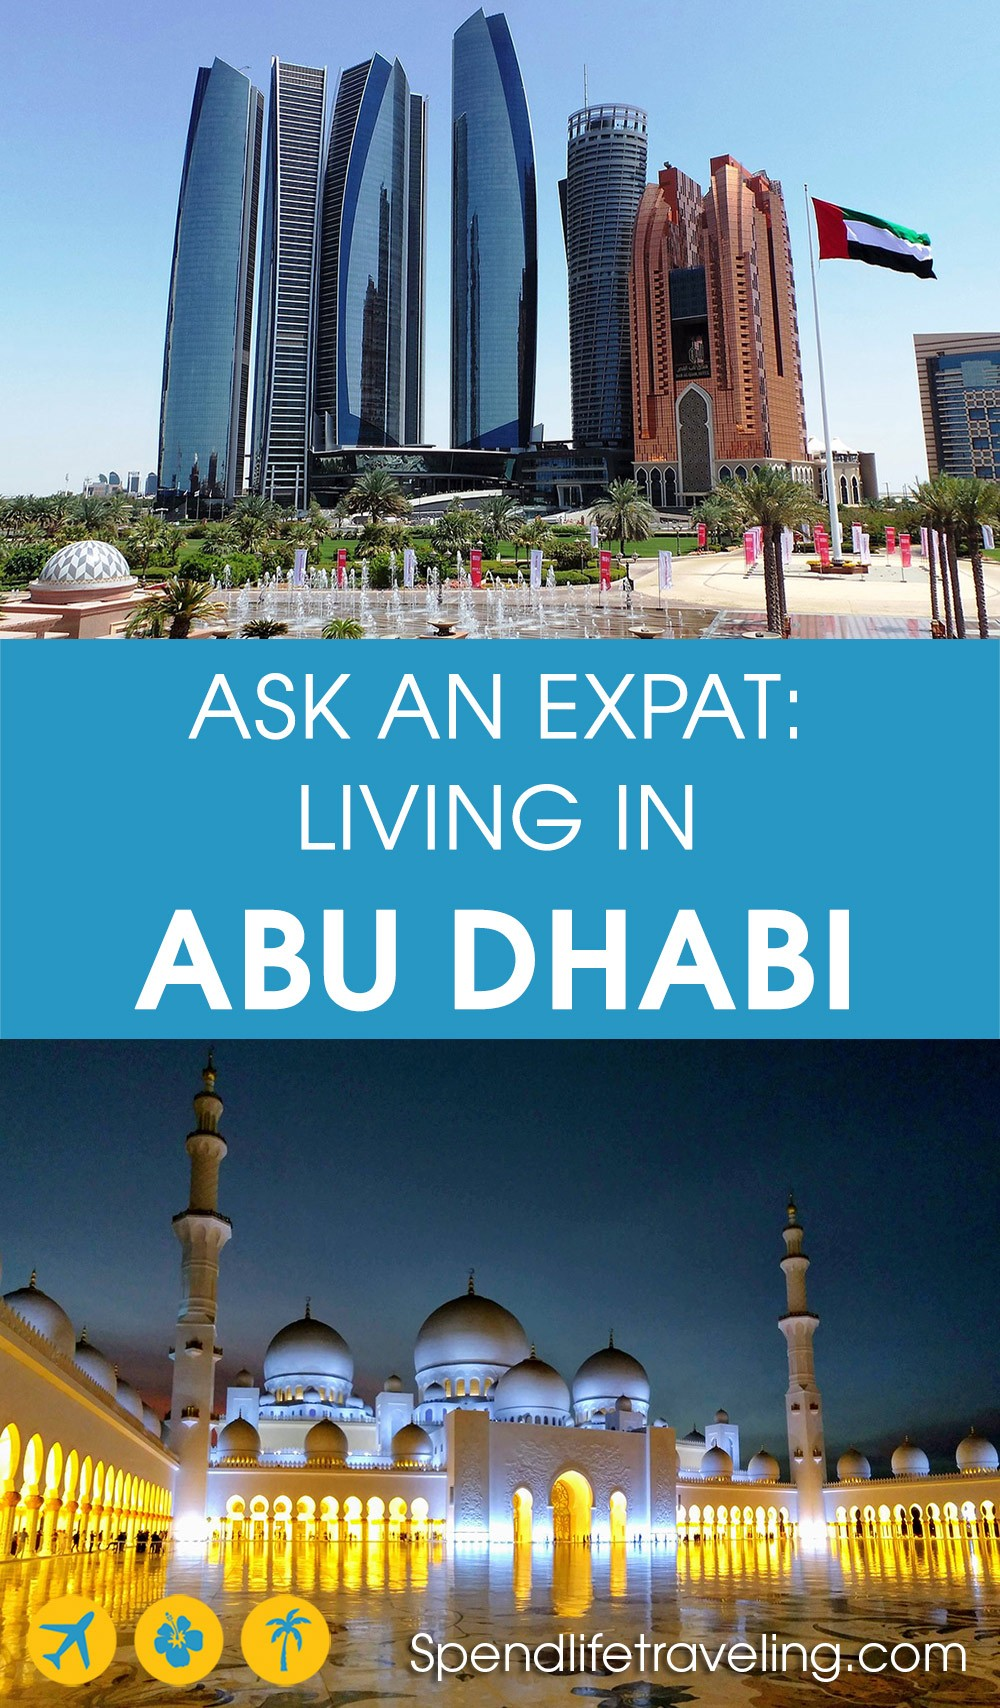 Interview with an expat about moving to and living in Abu Dhabi